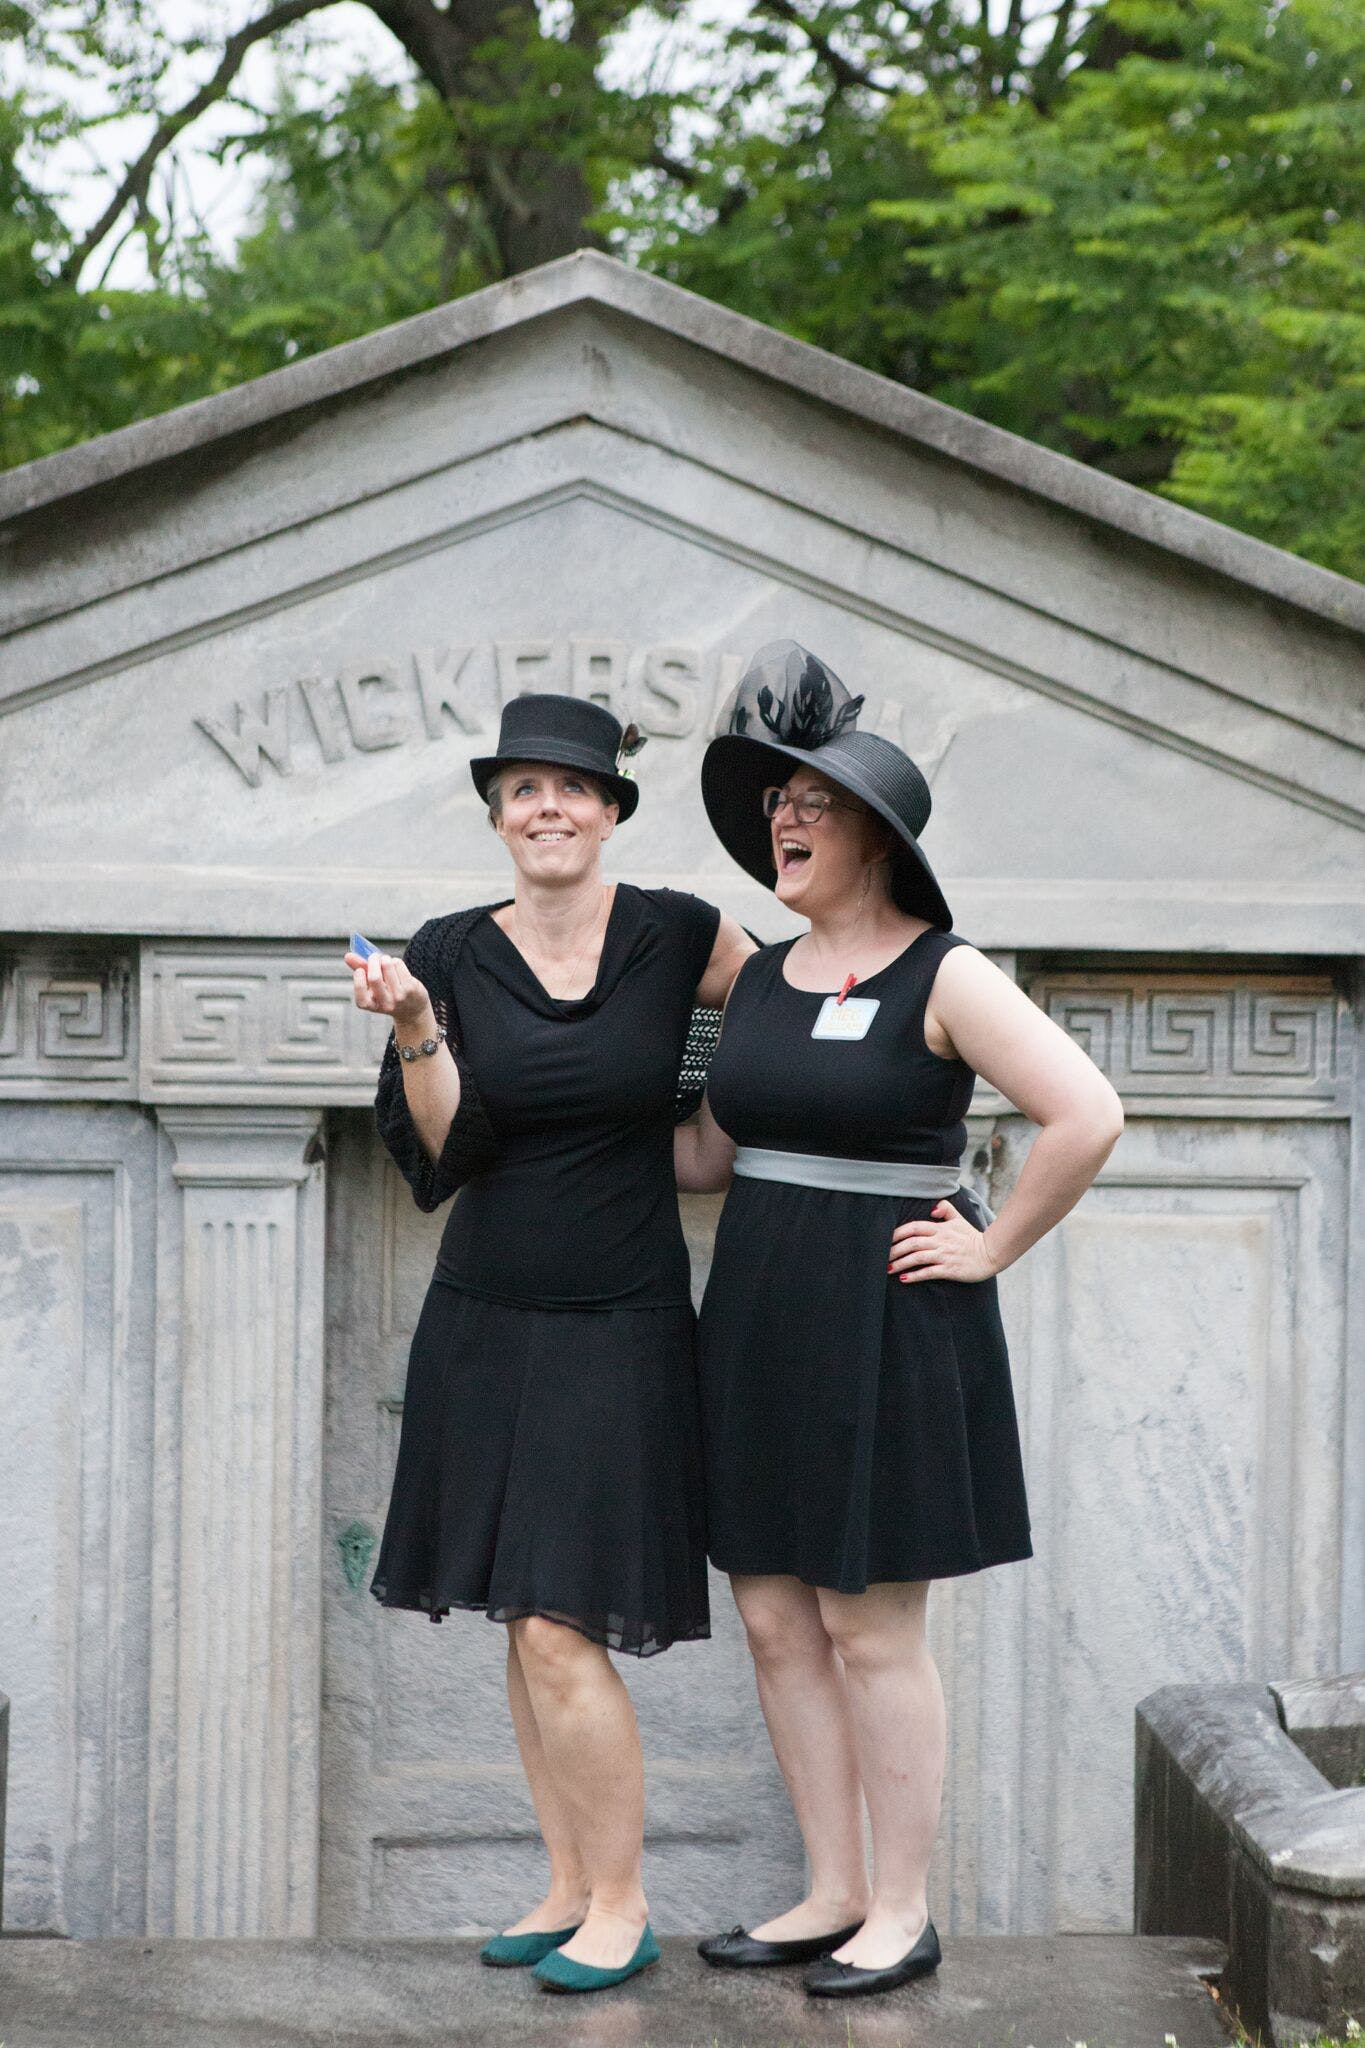 <p><em>Journeyers Kristy Smith and Meghann Williams sharing their experience during the Woodlands Cemetery walk at the closing party for &ldquo;The End.&rdquo;&nbsp;</em>Photo: Kate Raines</p>